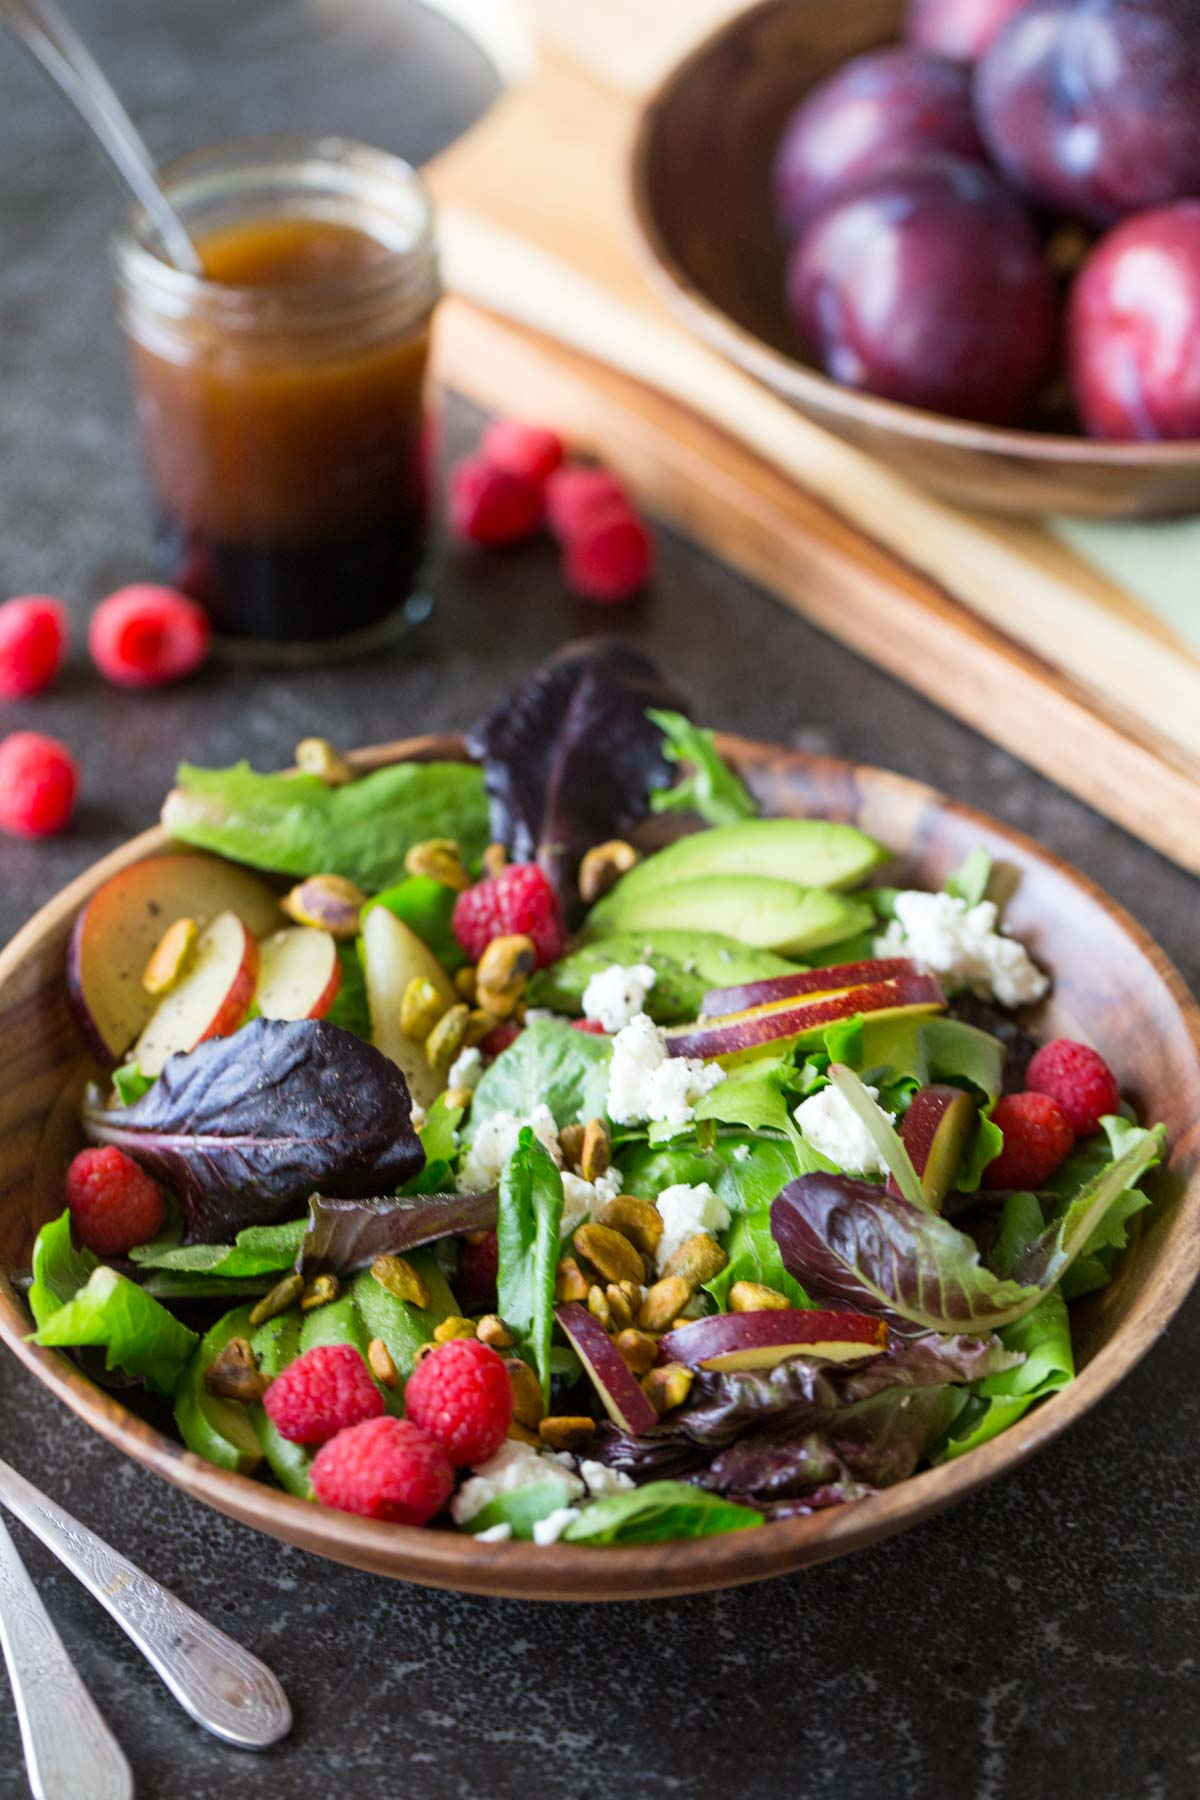 Summer Fruited Salad with Goat Cheese and Pistachios in a wood bowl, with a jar of homemade balsamic vinaigrette in the background along with a bowl of whole plums.